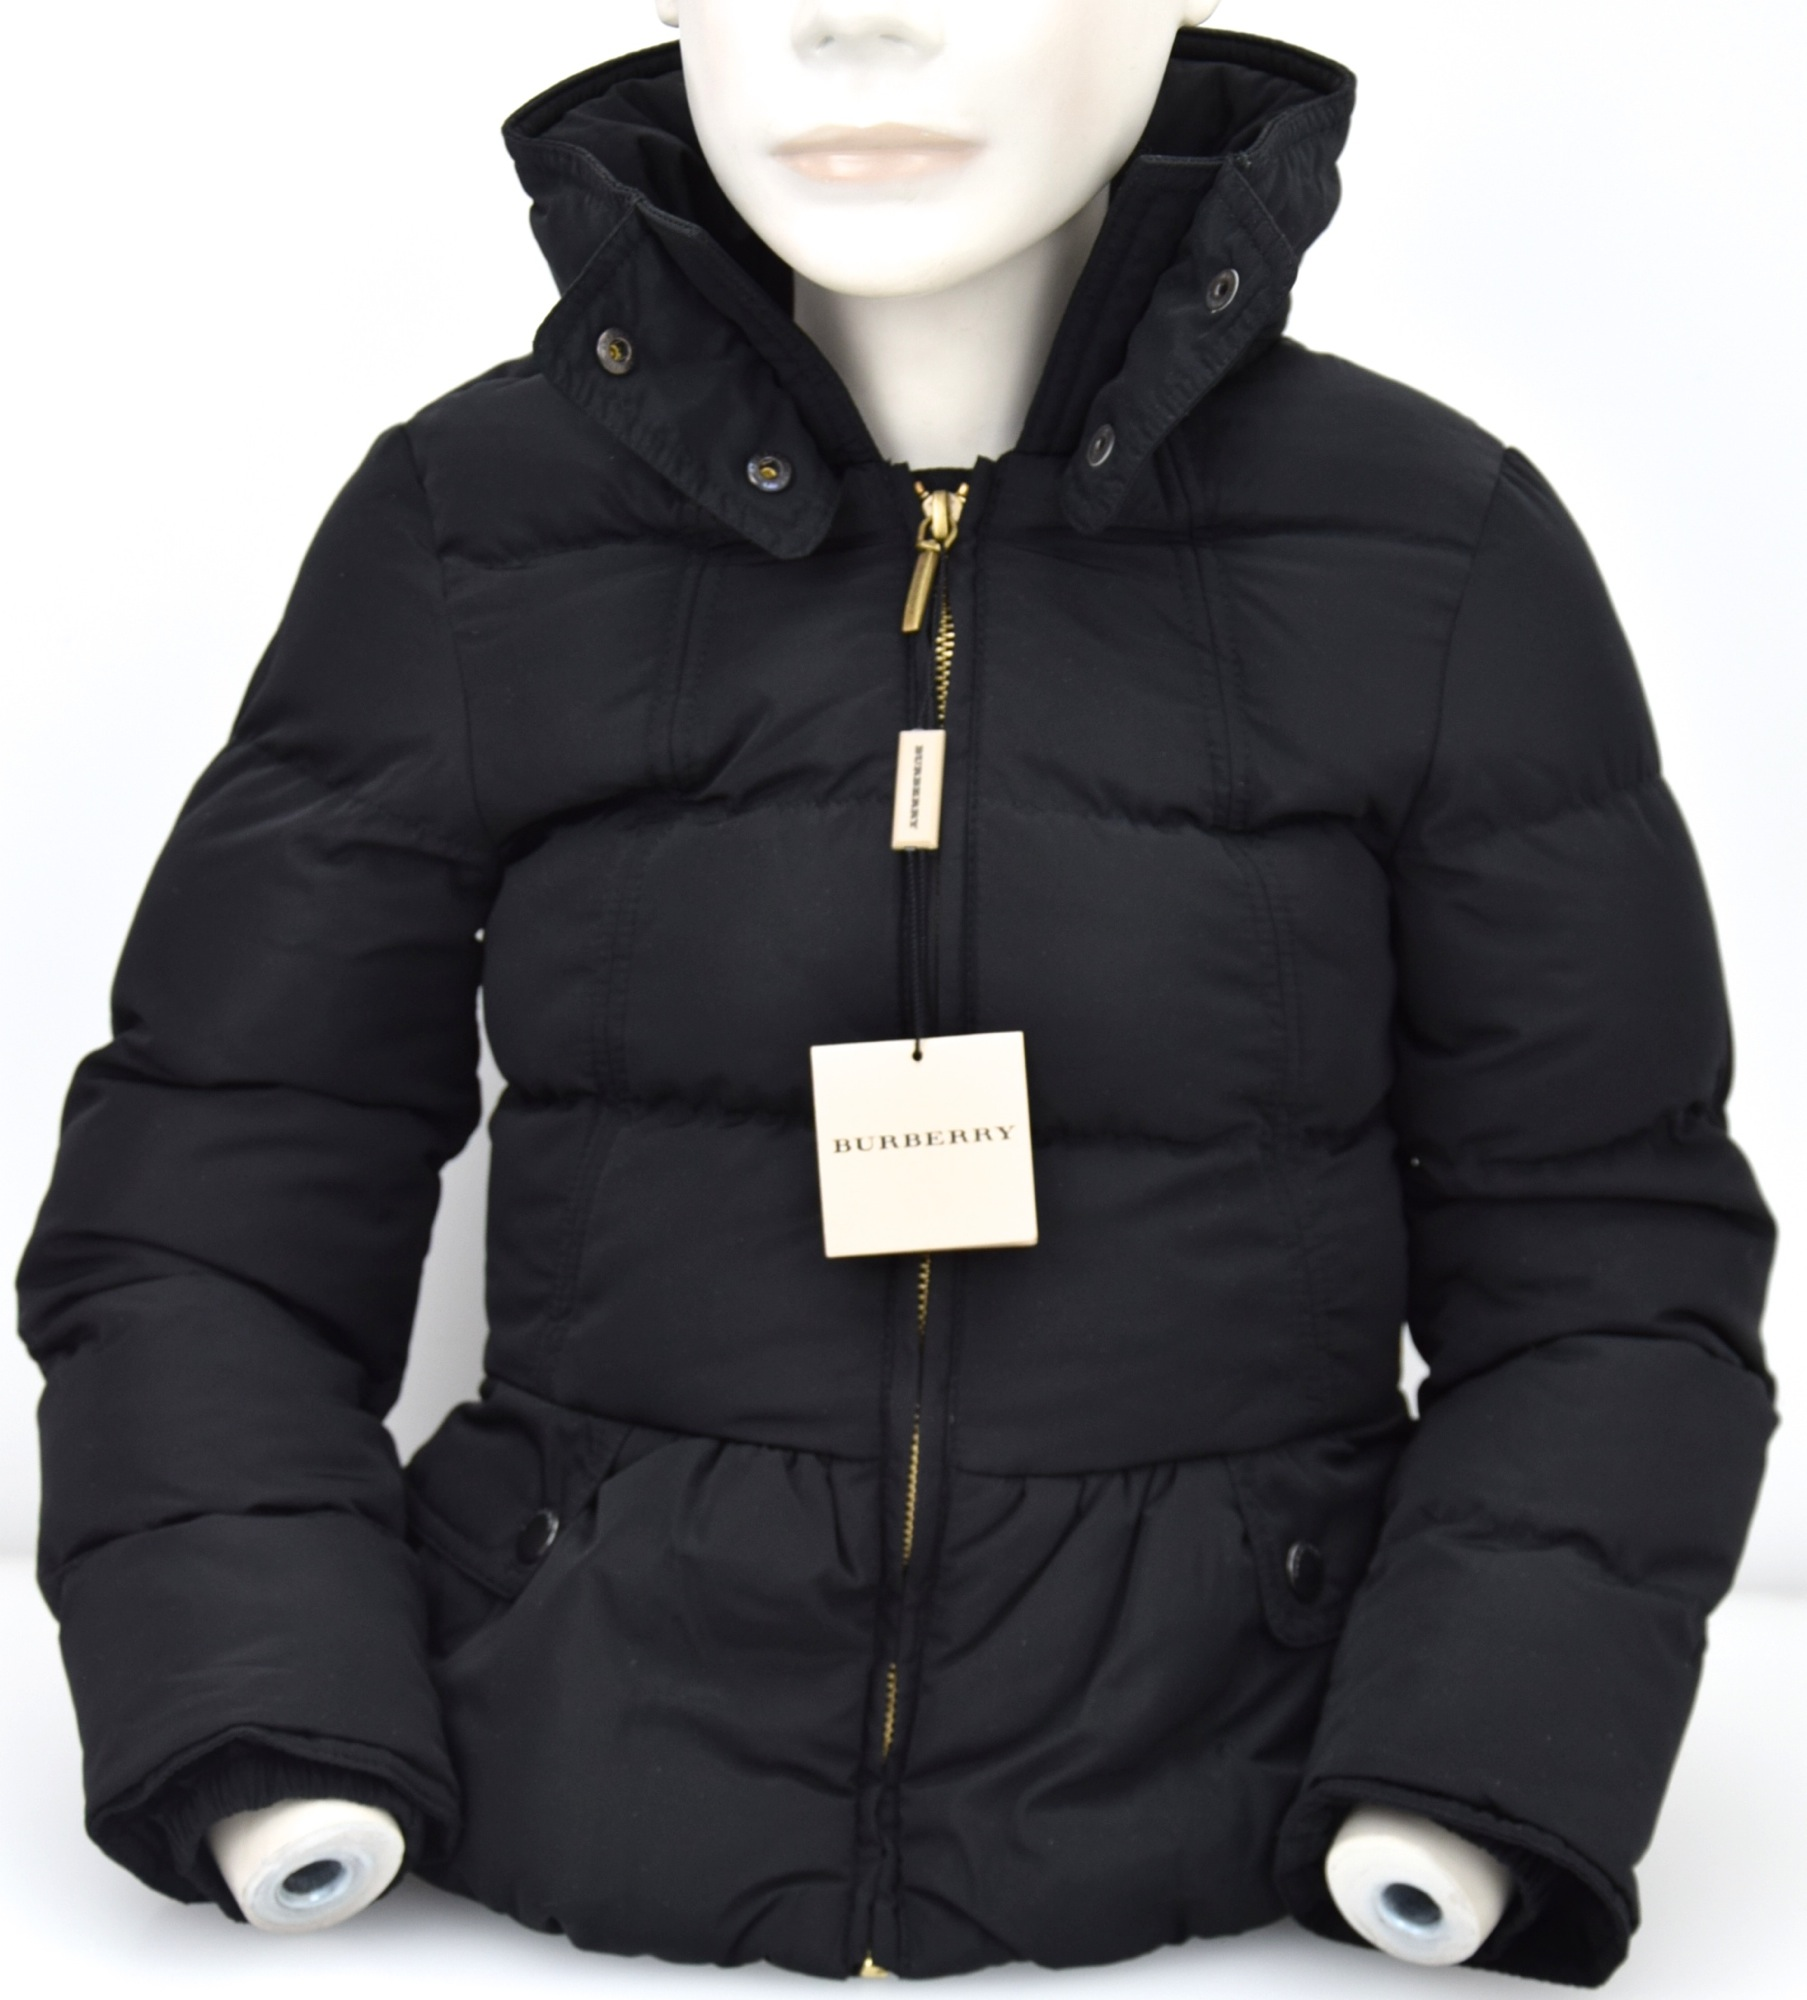 BURBERRY GIRL PADDED JACKET BLACK NYLON CODE B16419 Y21 | eBay